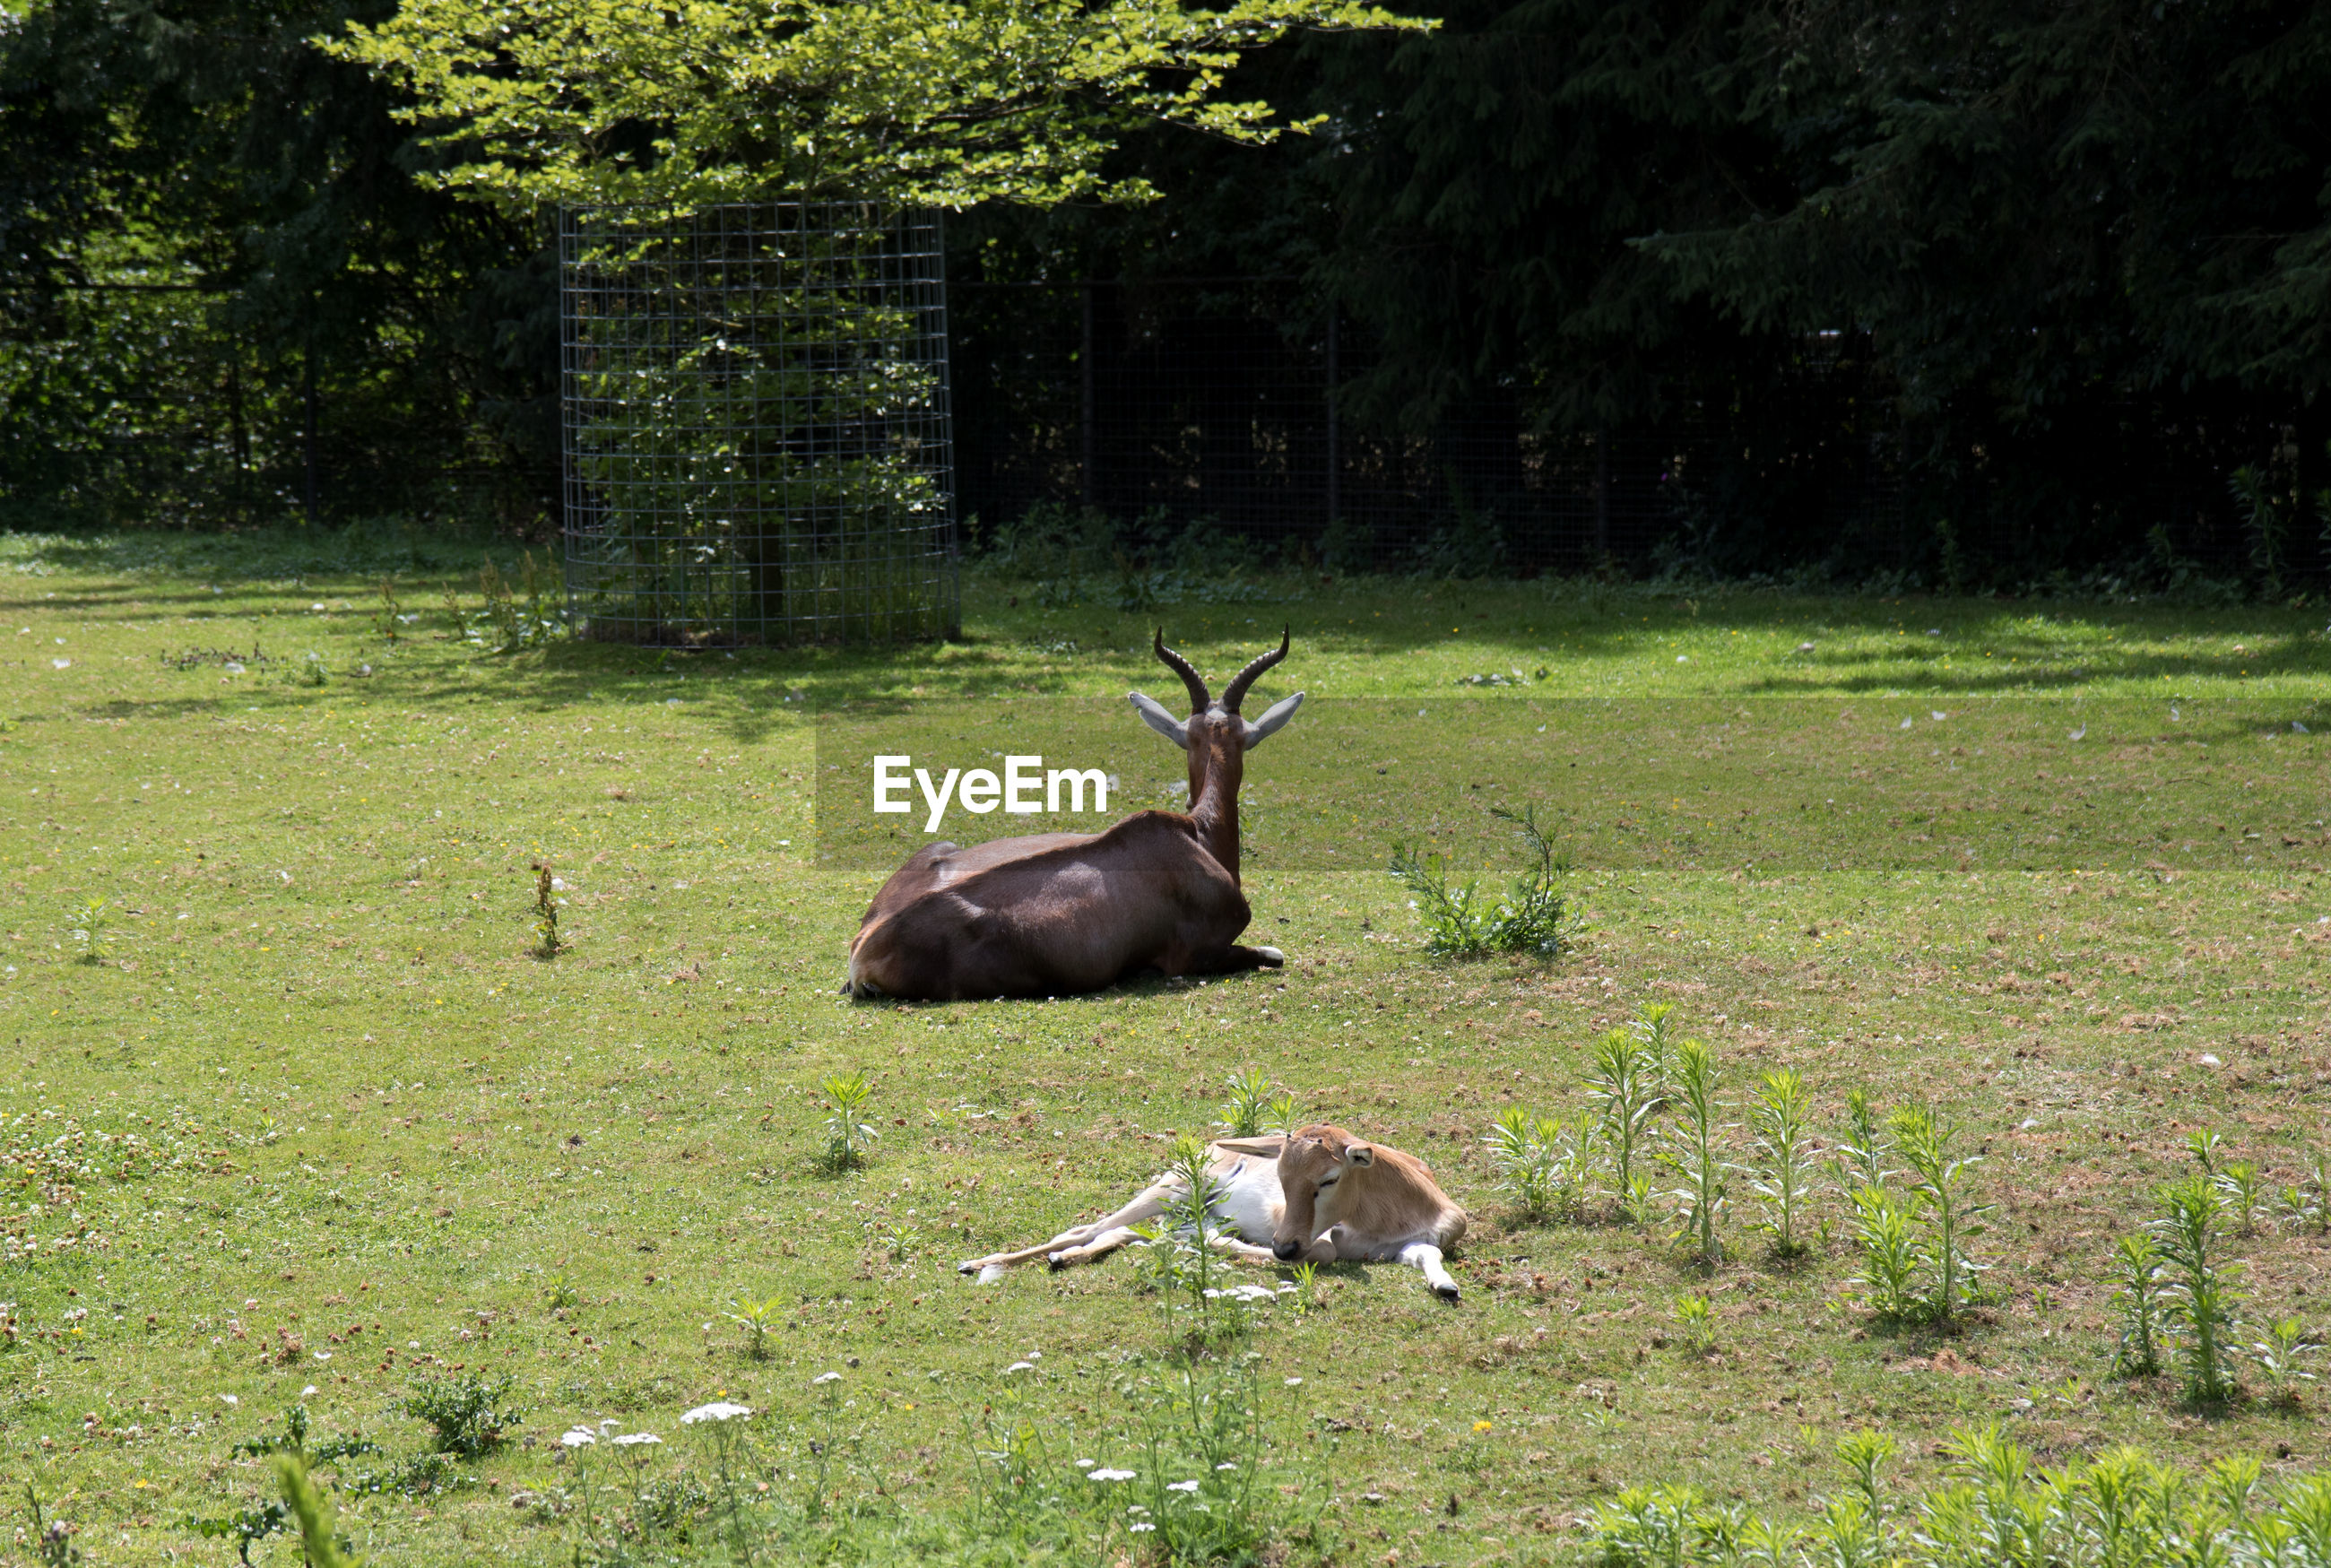 DEER ON A FIELD